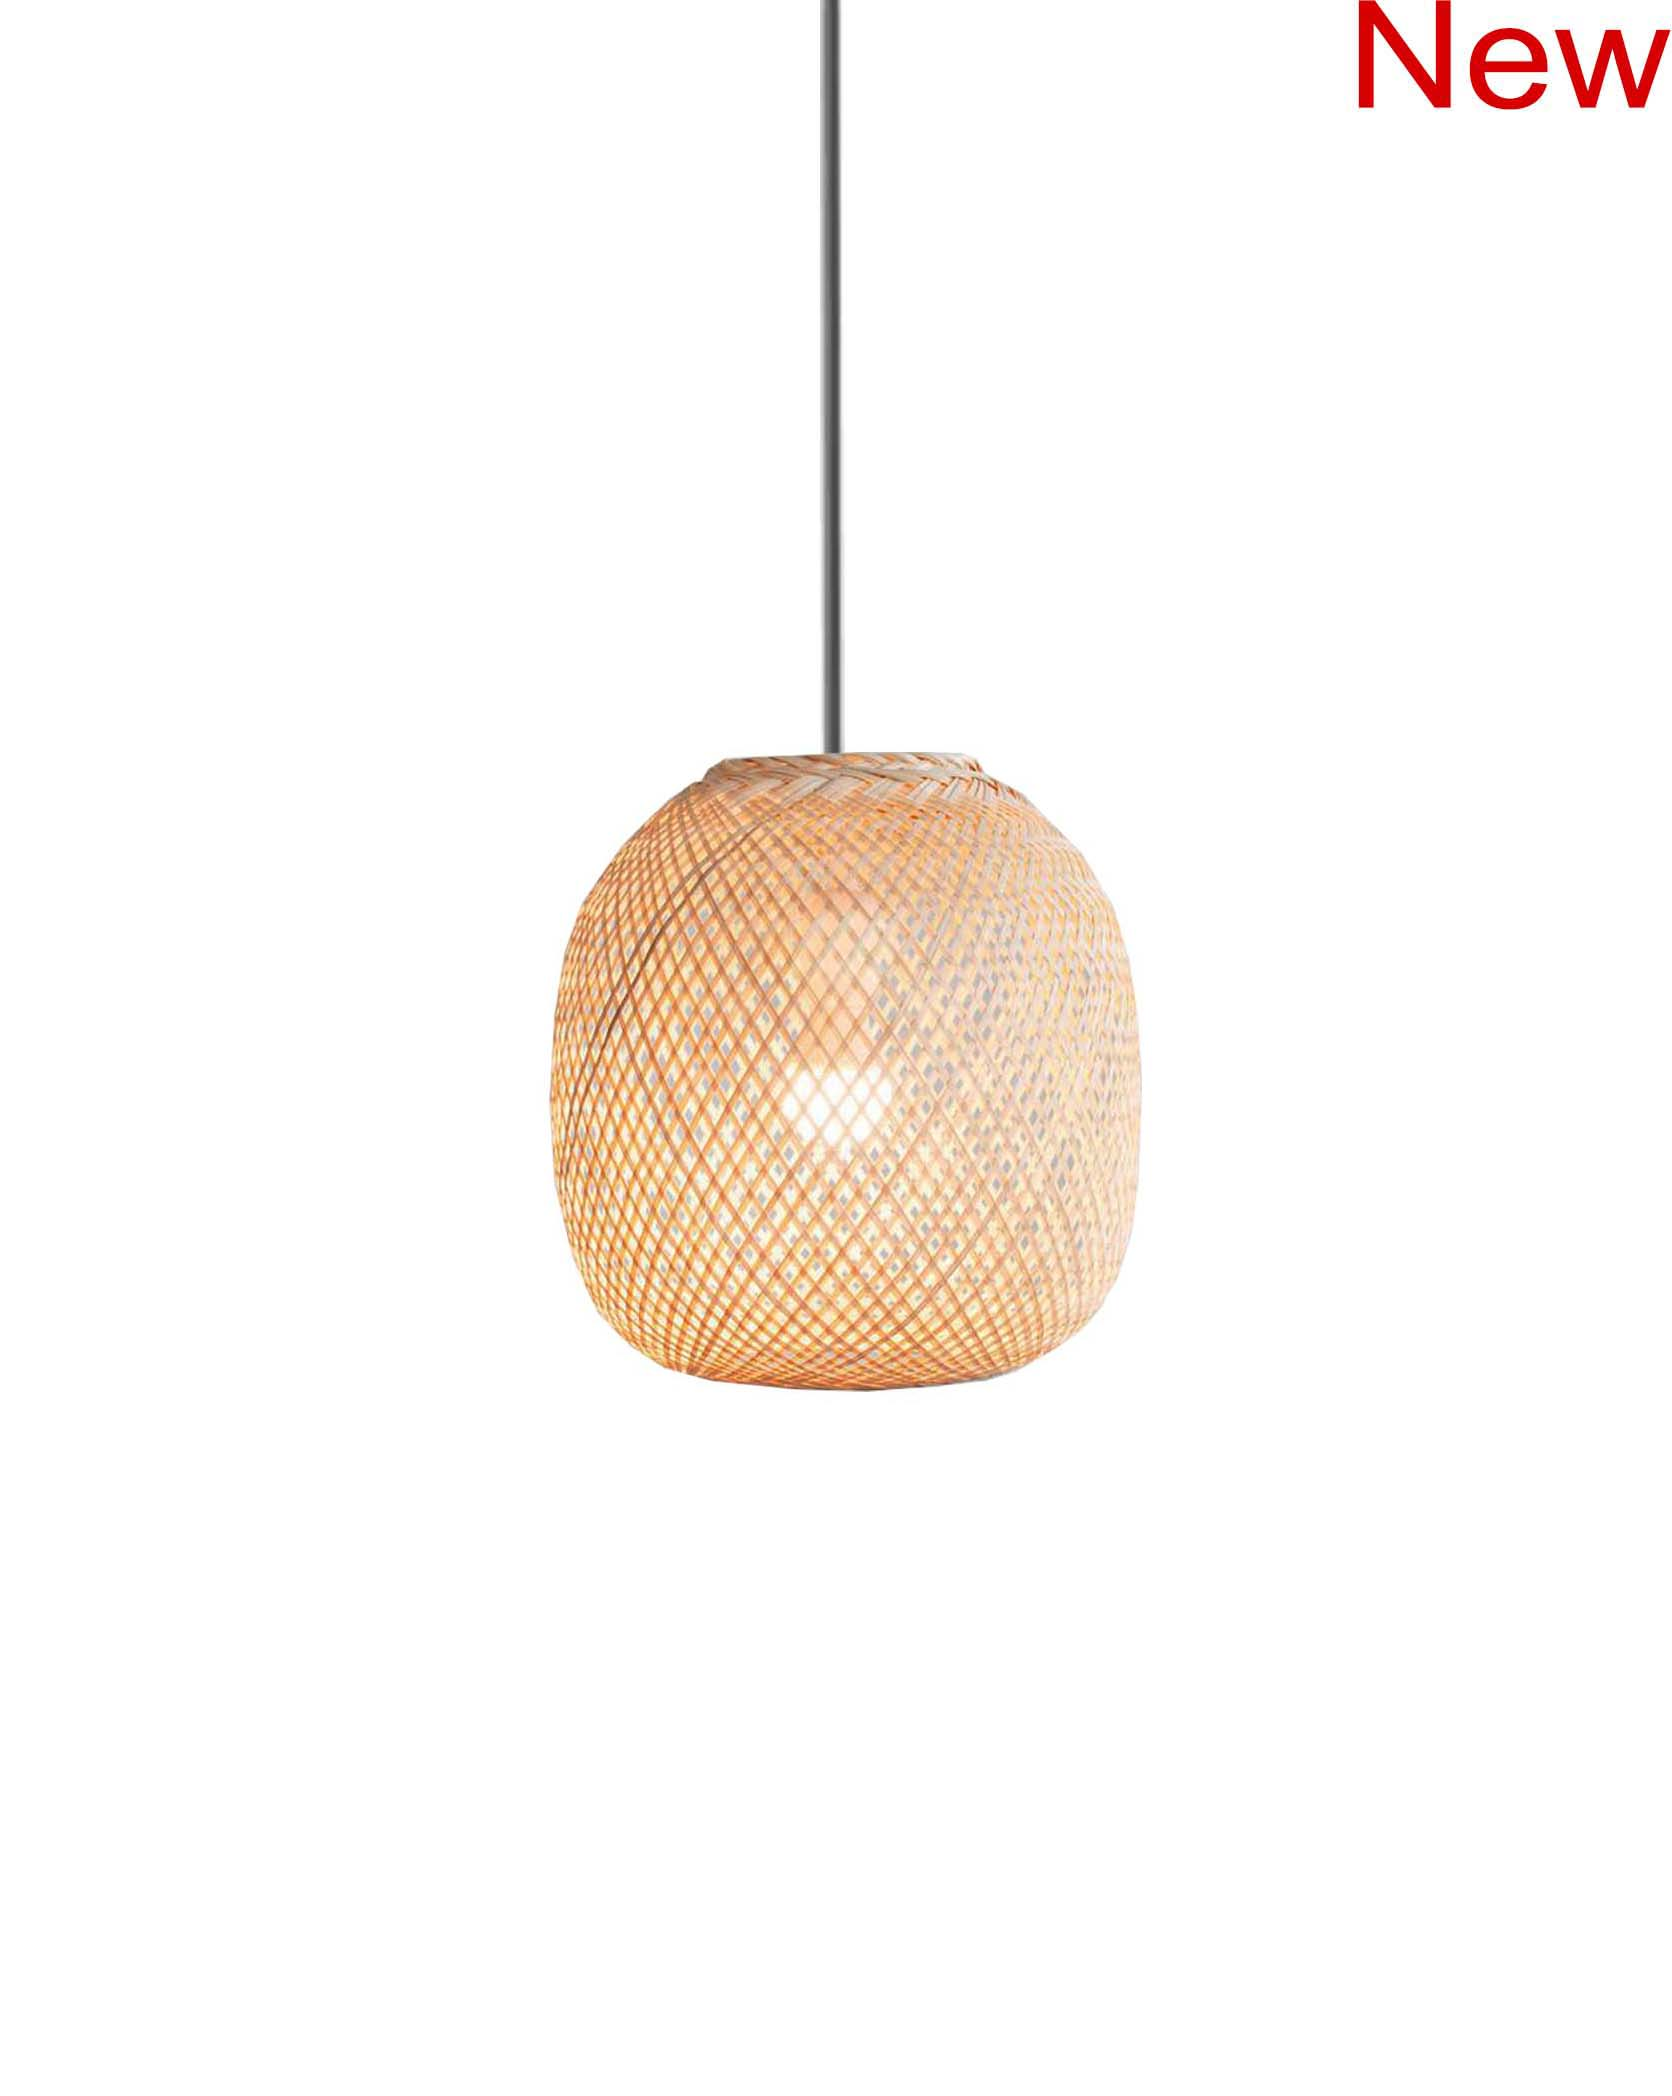 Bamboo Ball Chandelier product photo #3